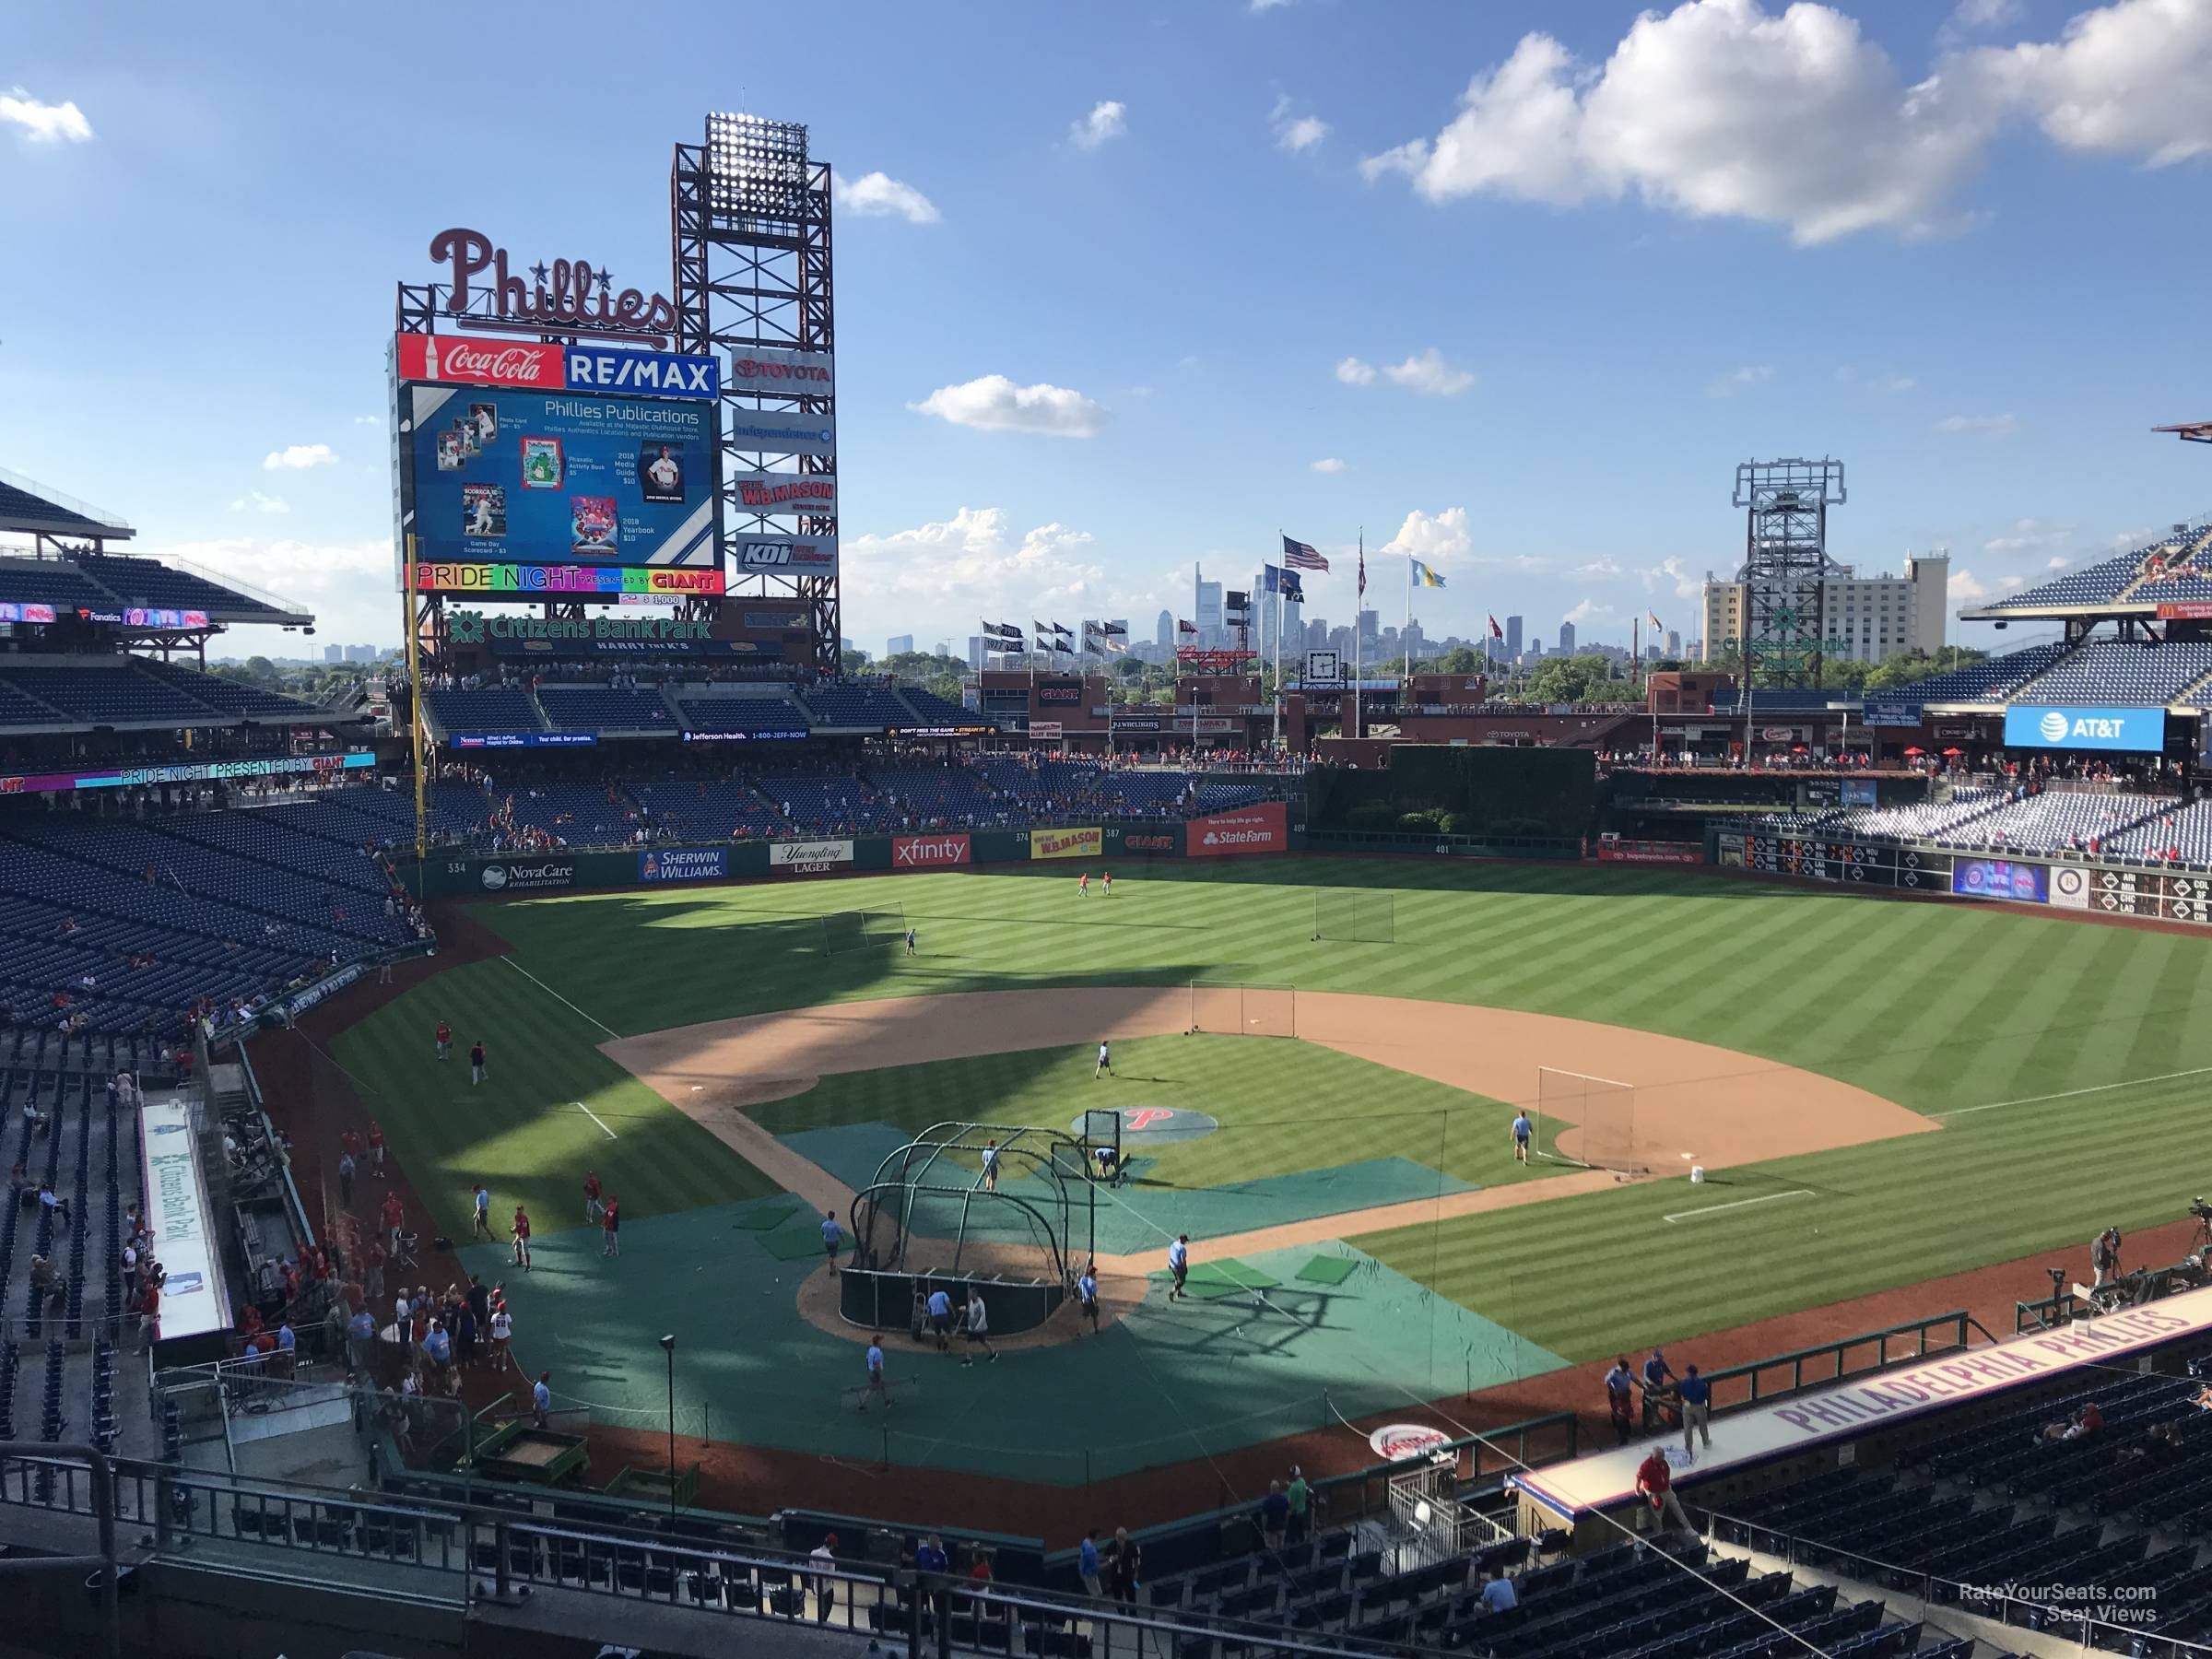 Hd Image Of Citizens Bank Park Section 220 Philadelphia Phillies Seating